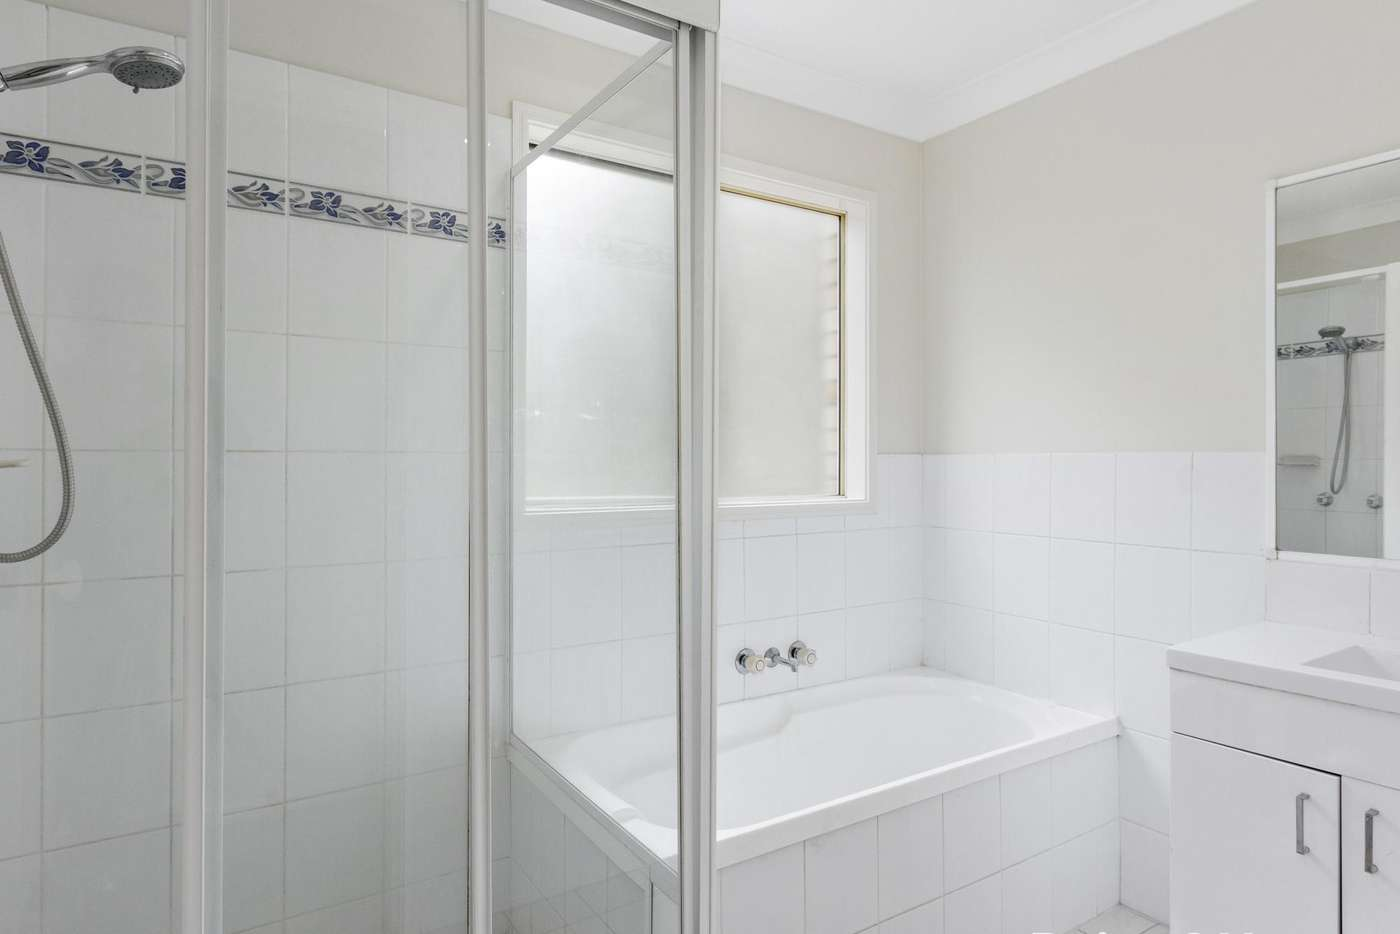 Seventh view of Homely house listing, 42/50 Clarks Road, Loganholme QLD 4129